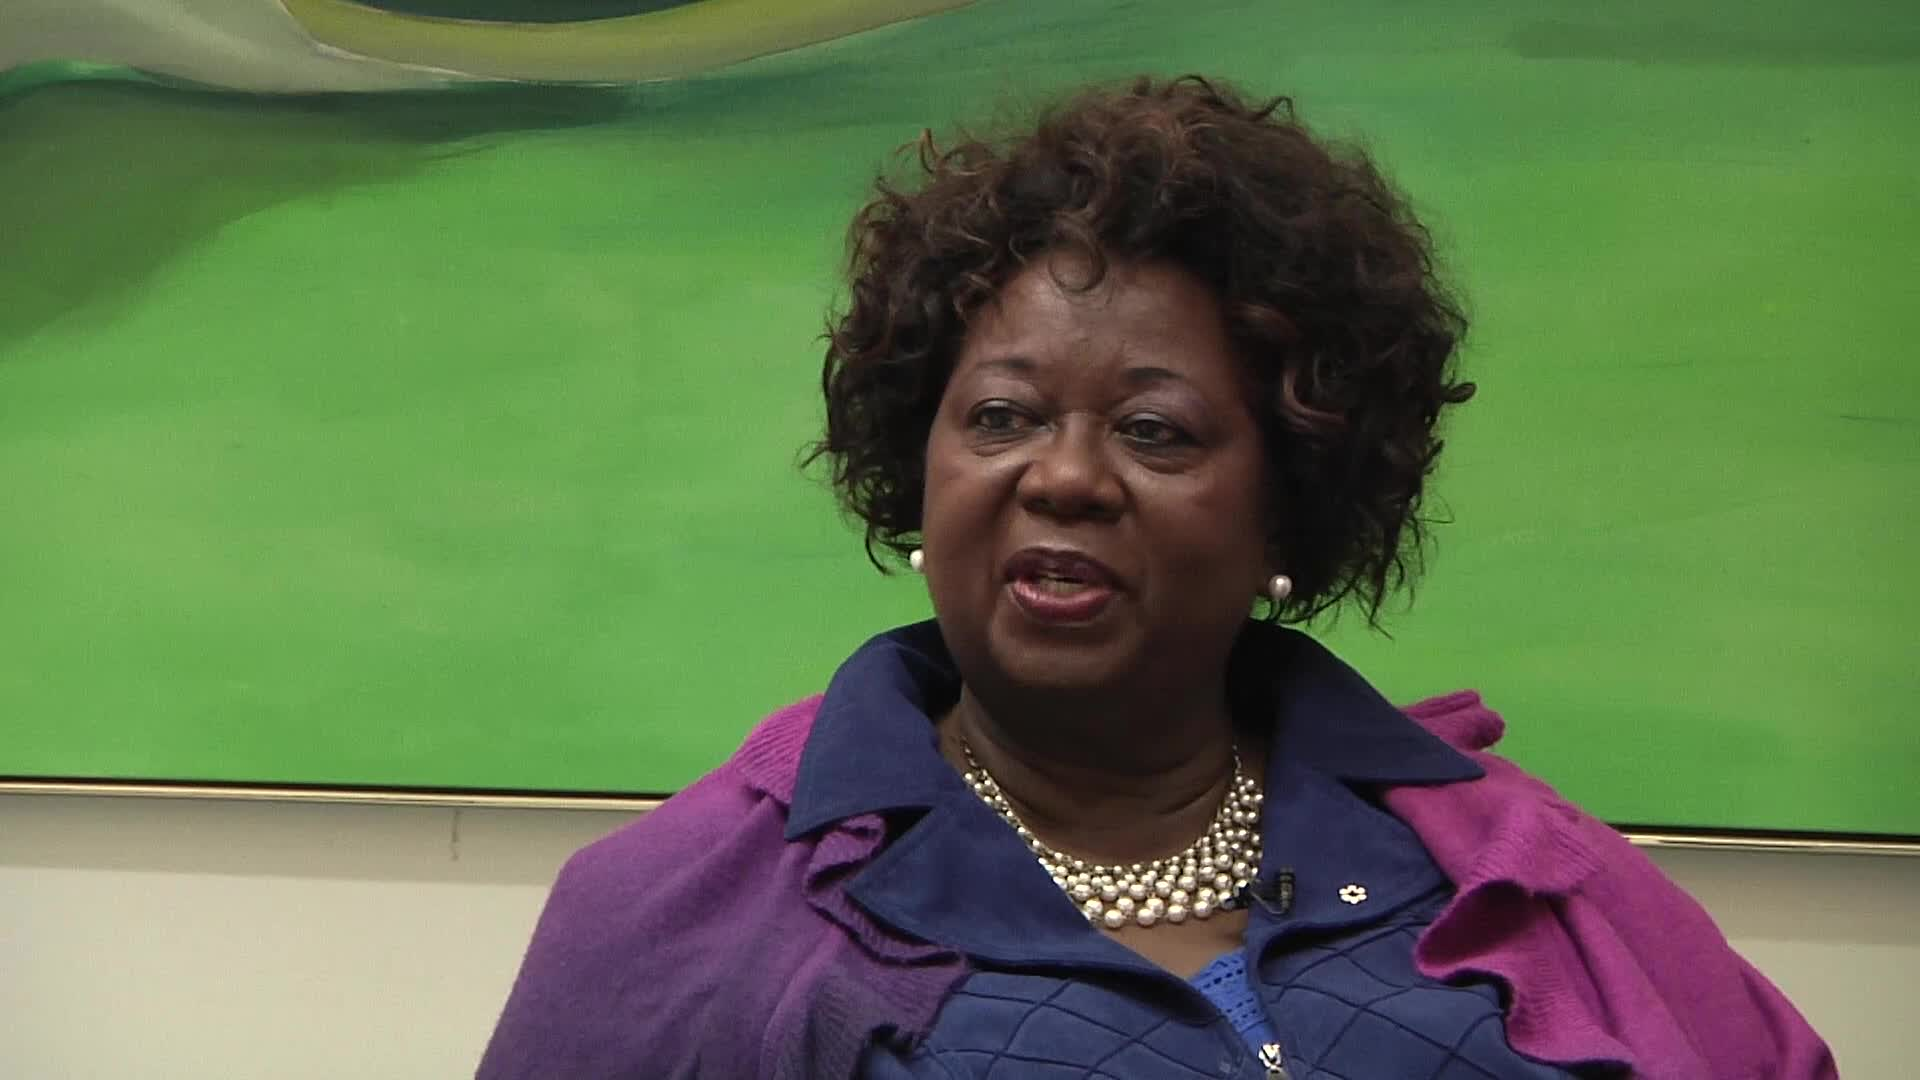 Jean Augustine interview: Jean throws buttons in corner